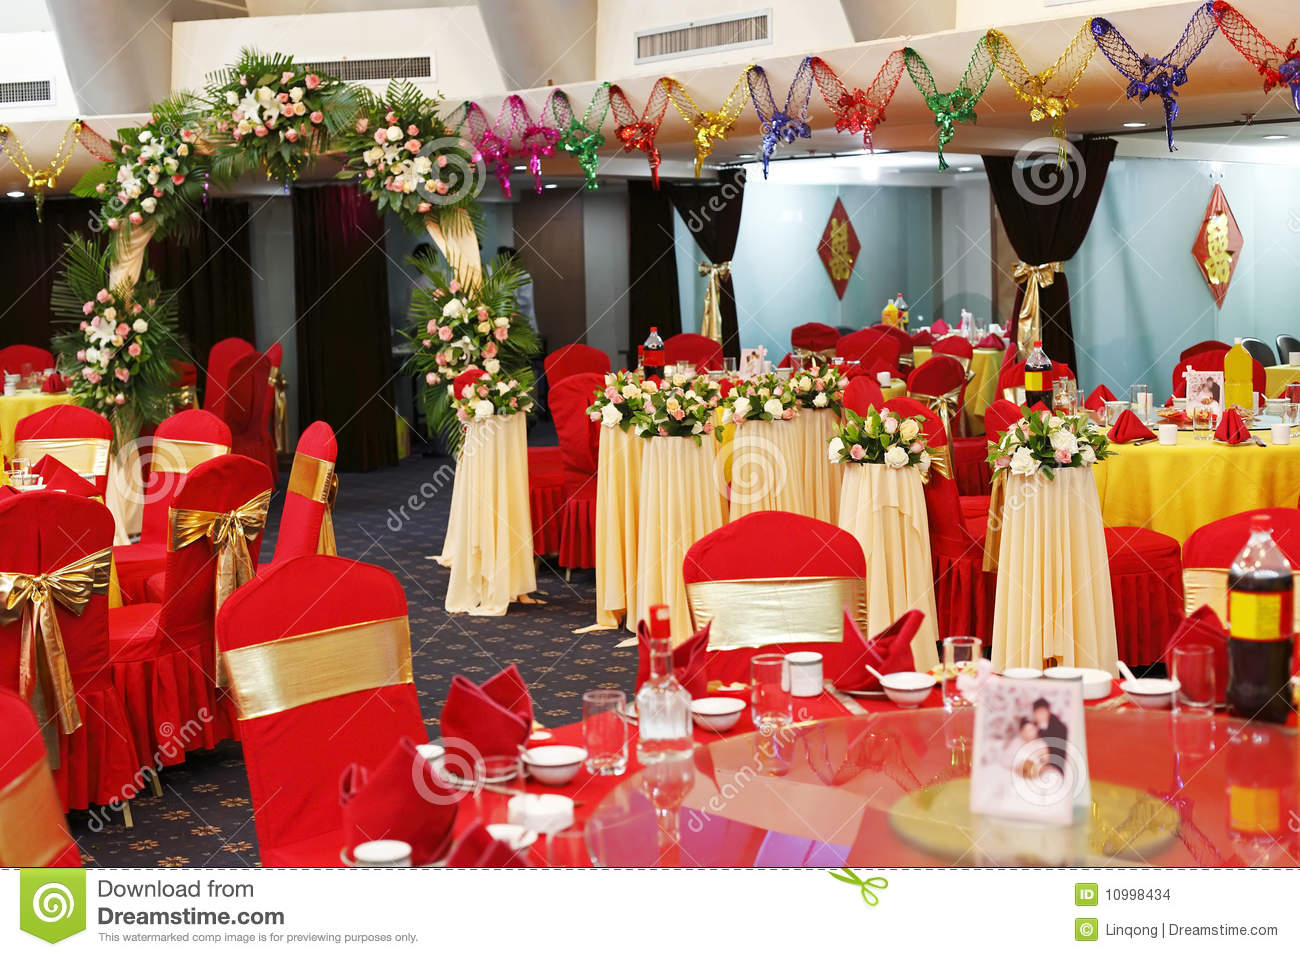 Decoration in wedding banquet stock images image 10998434 for Decoration decoration